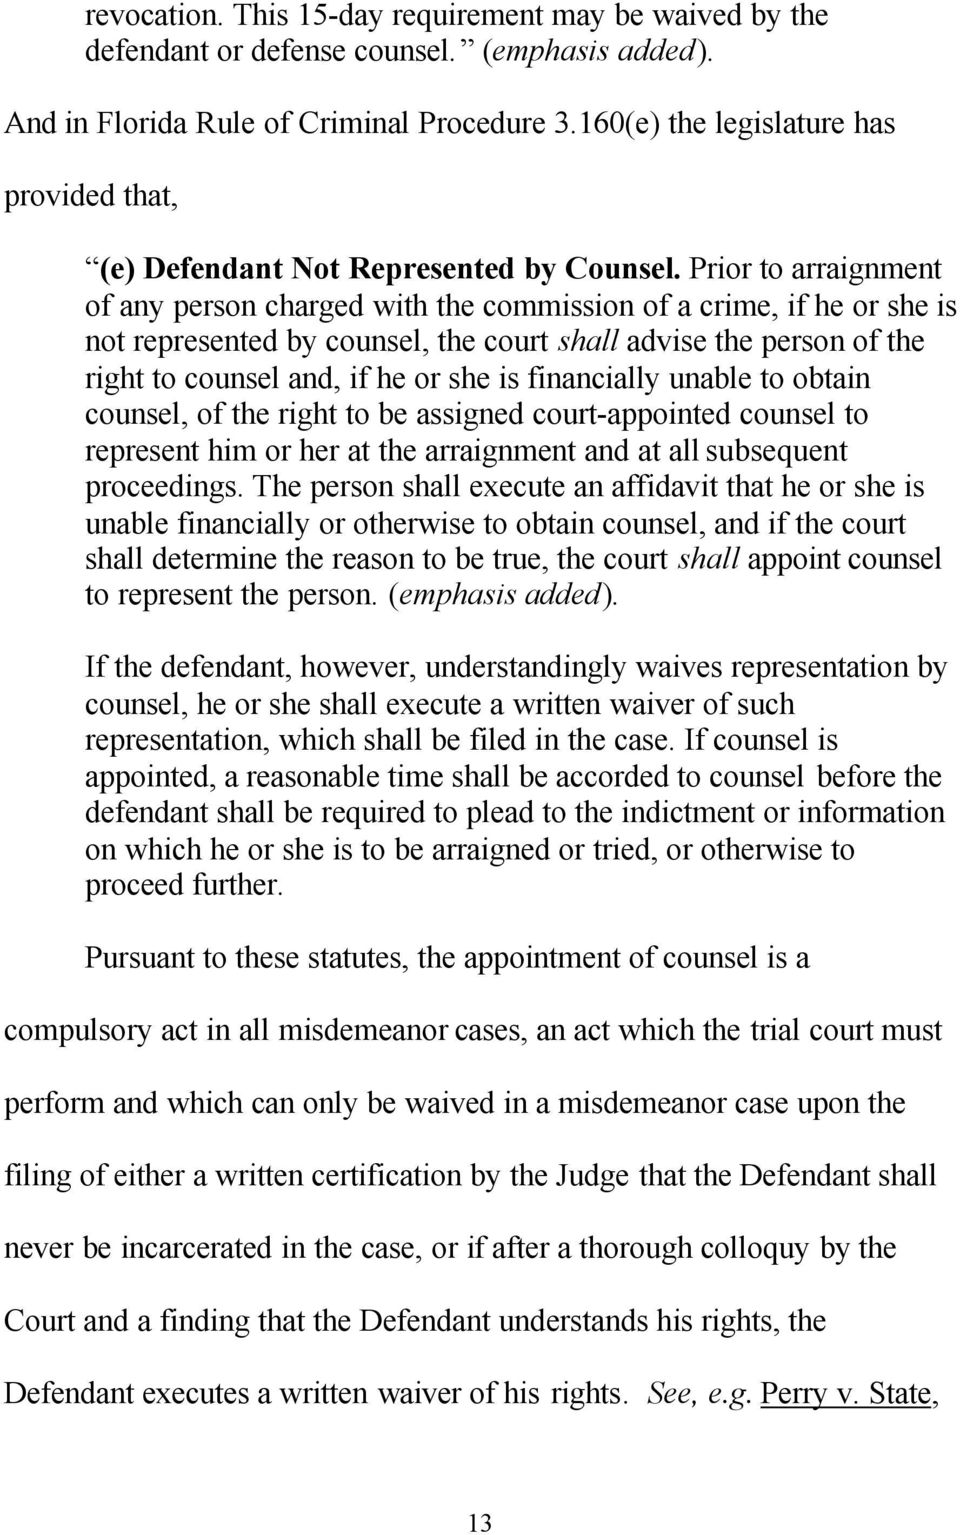 Prior to arraignment of any person charged with the commission of a crime, if he or she is not represented by counsel, the court shall advise the person of the right to counsel and, if he or she is